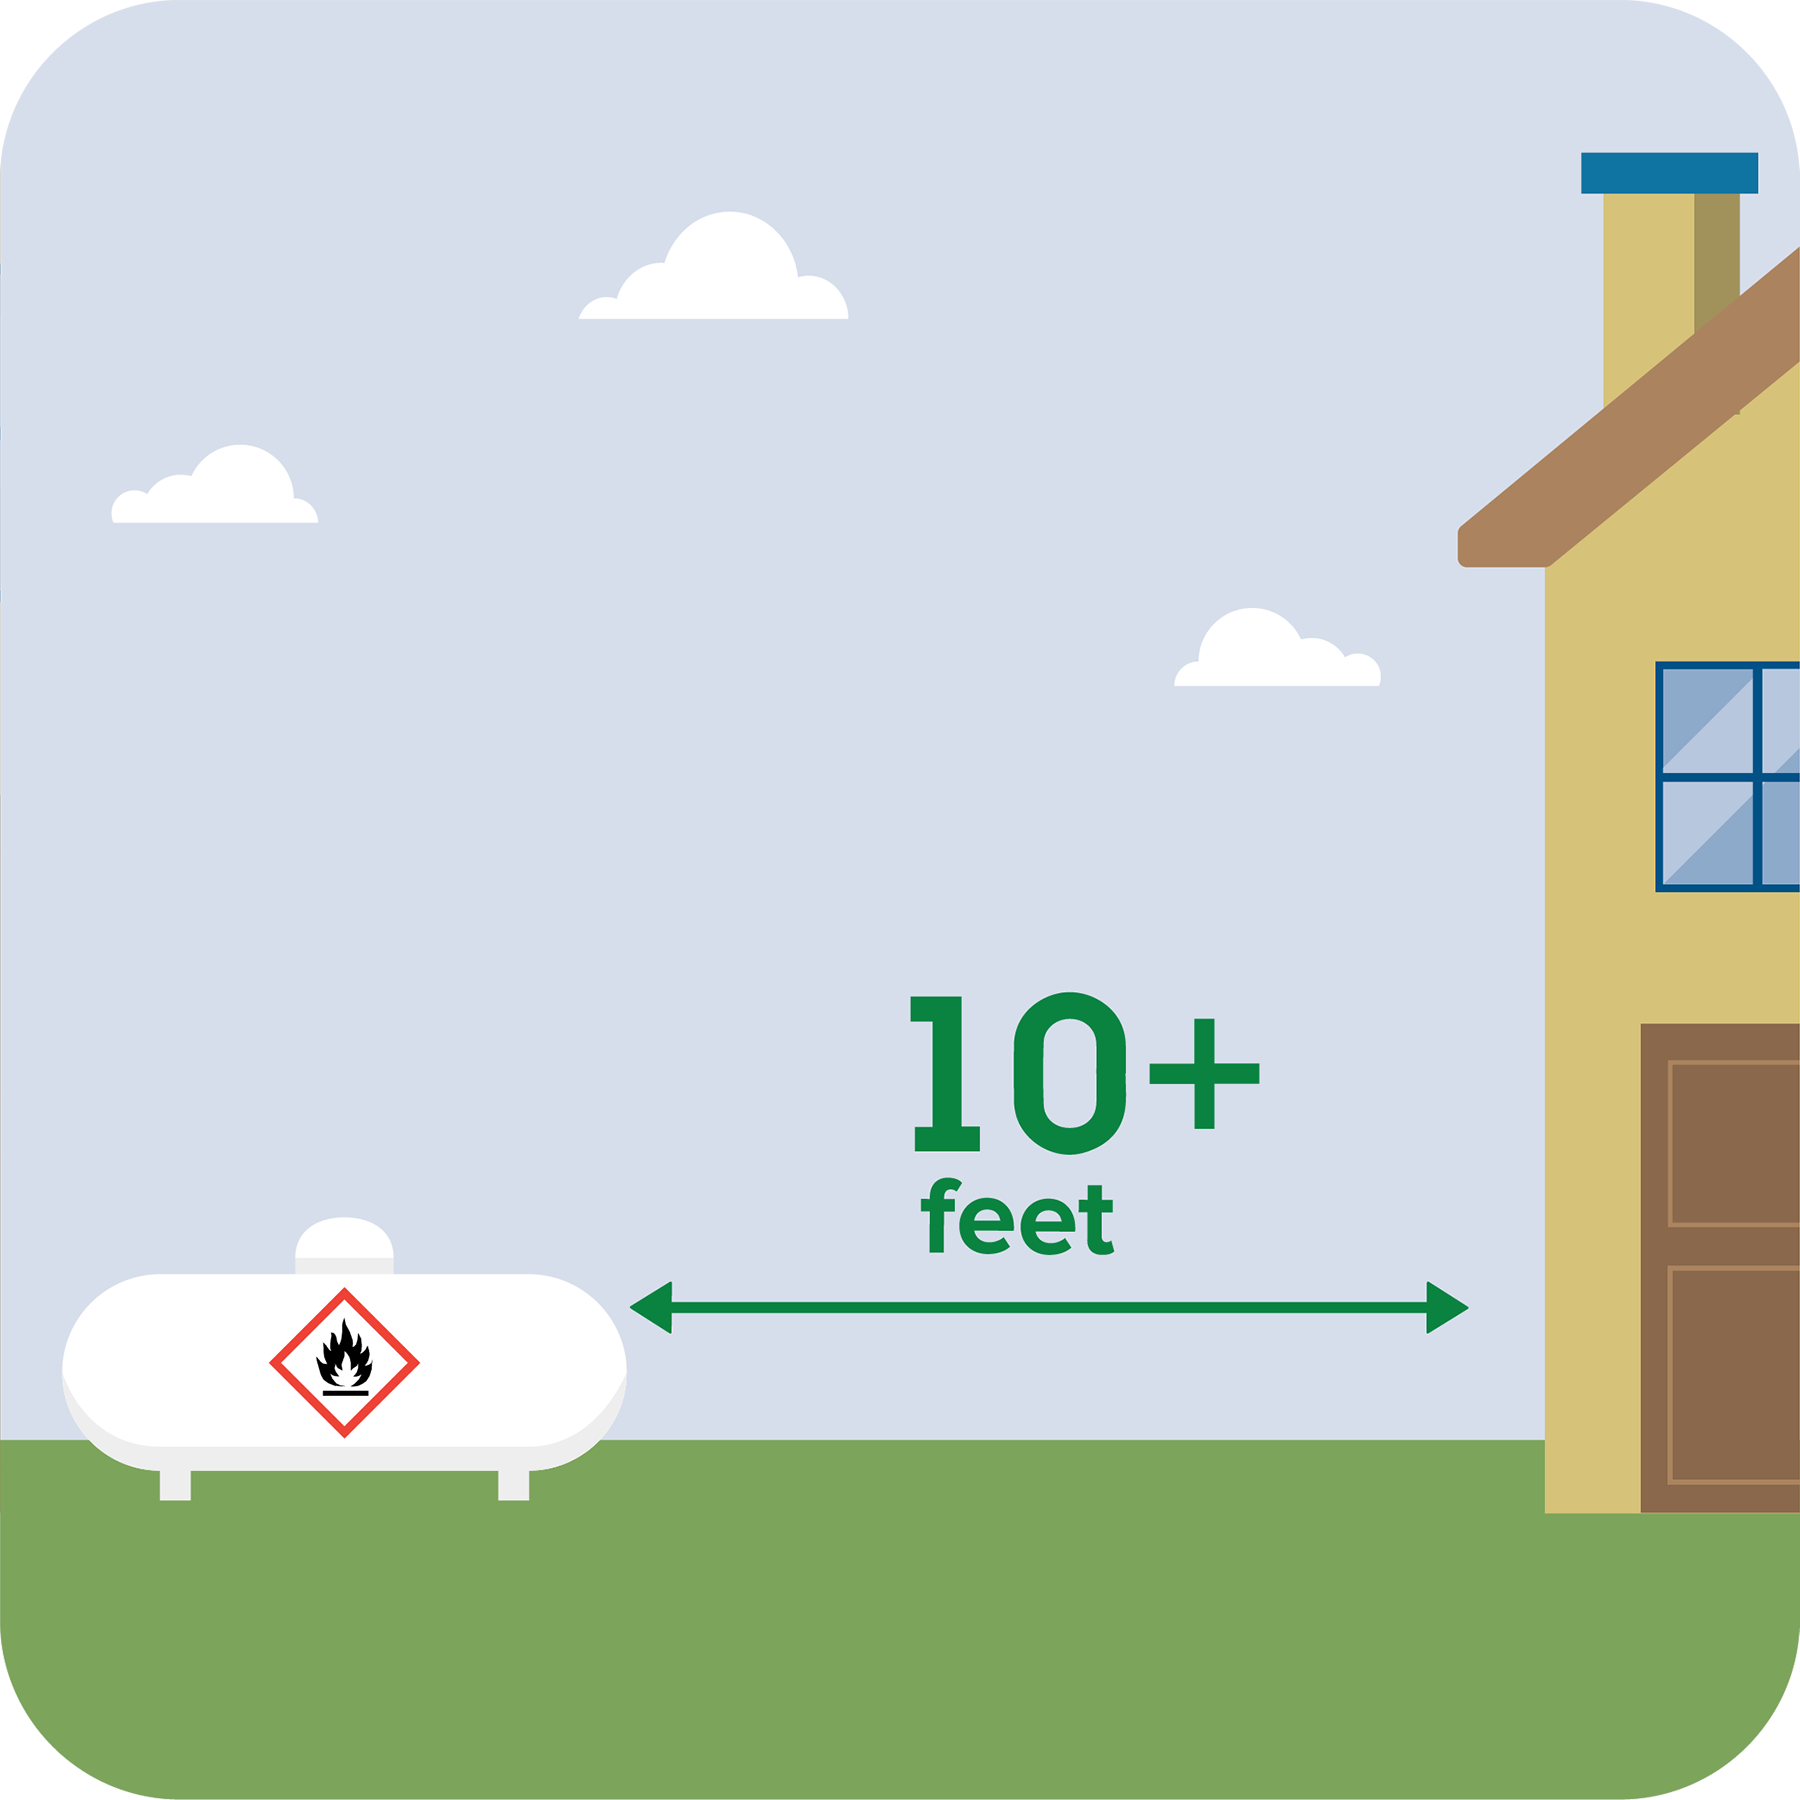 Keep wood piles 5+ feet away from your home.